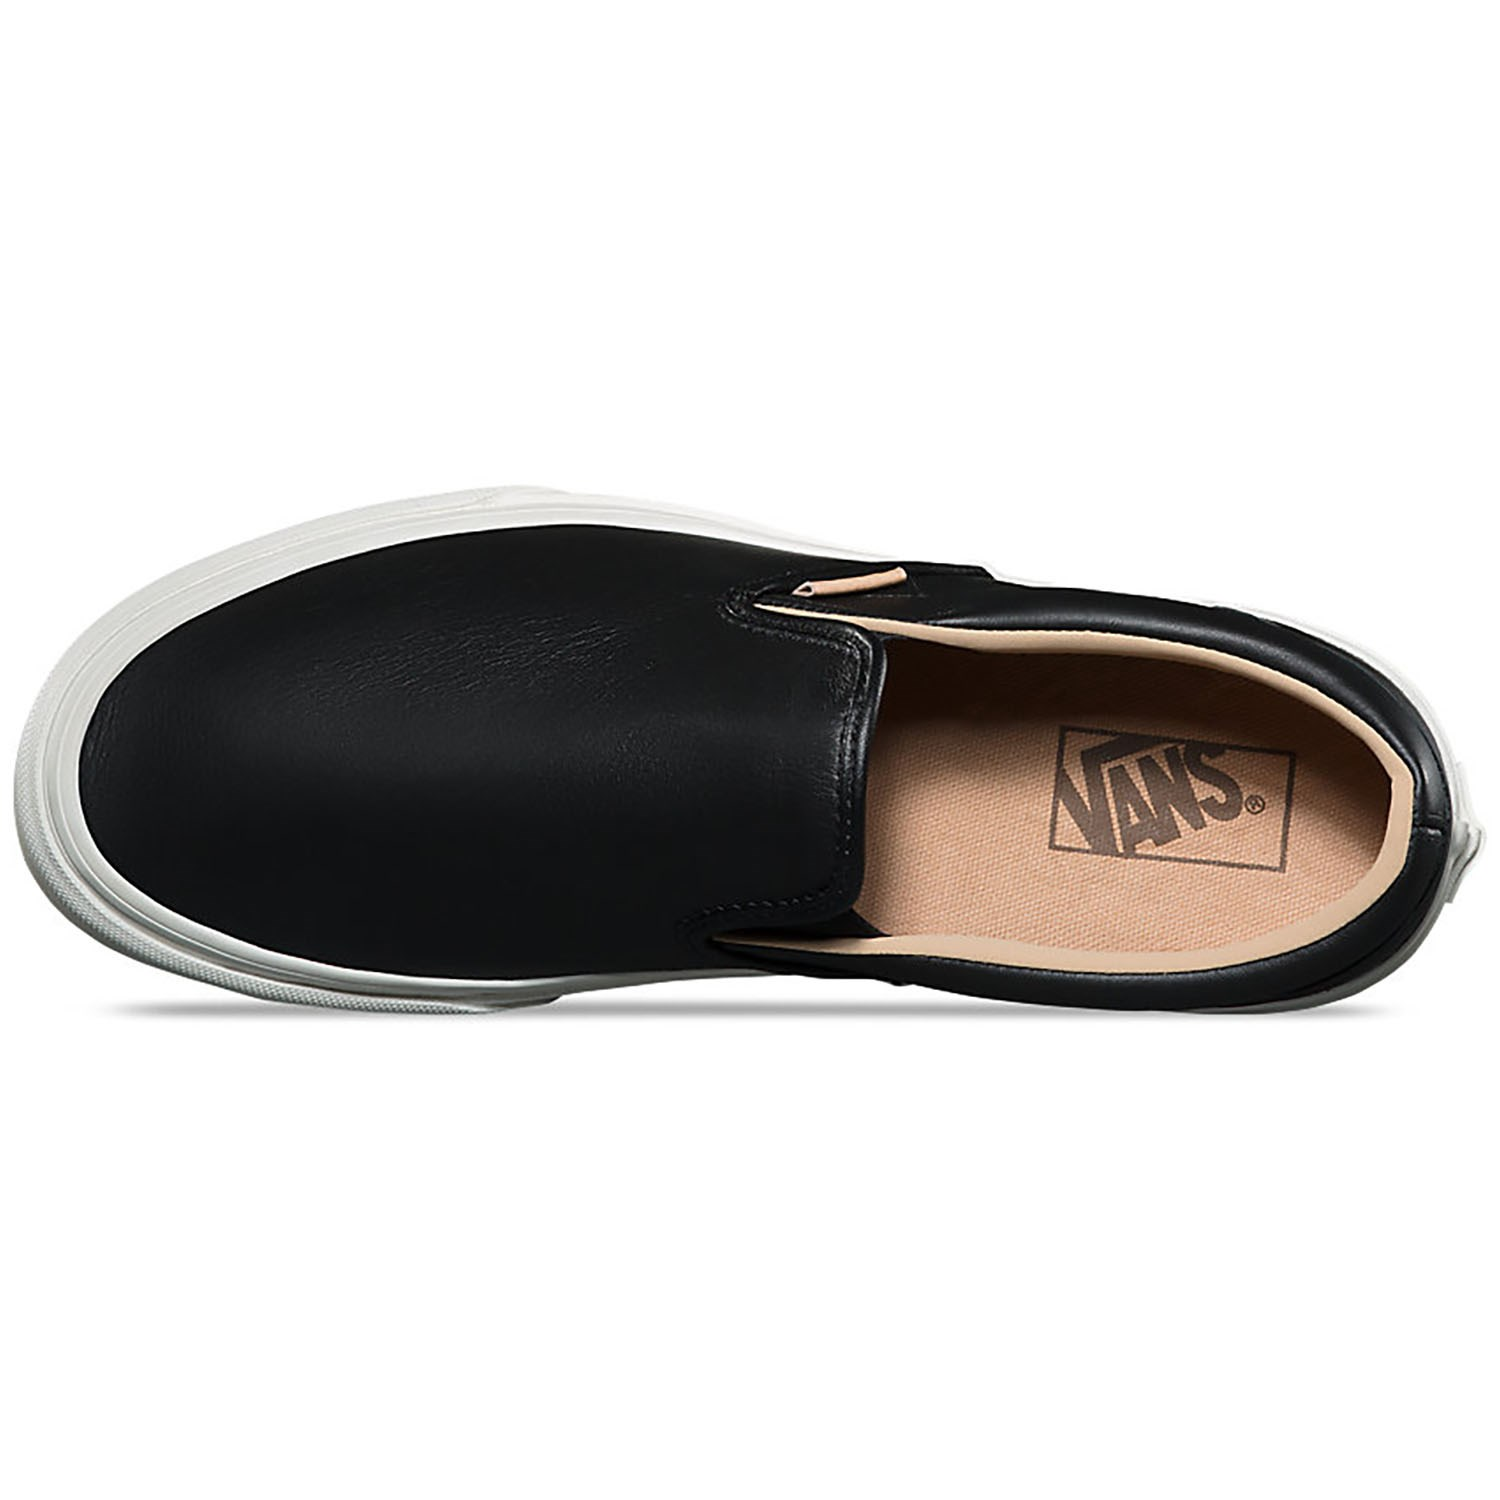 2f1fc038d5e7 Vans Lux Leather Classic Slip-On Shoes